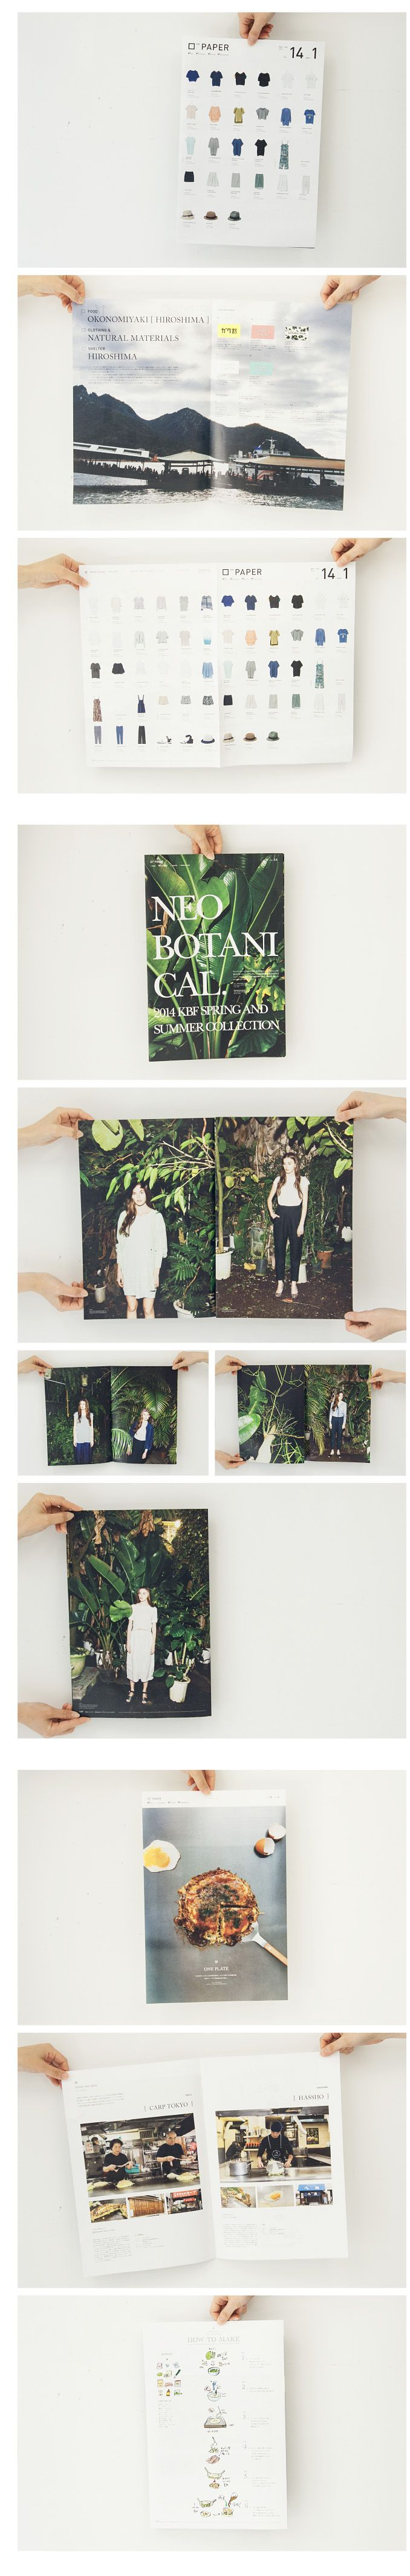 Néo Botanical - 2014 KBF spring &summer collection